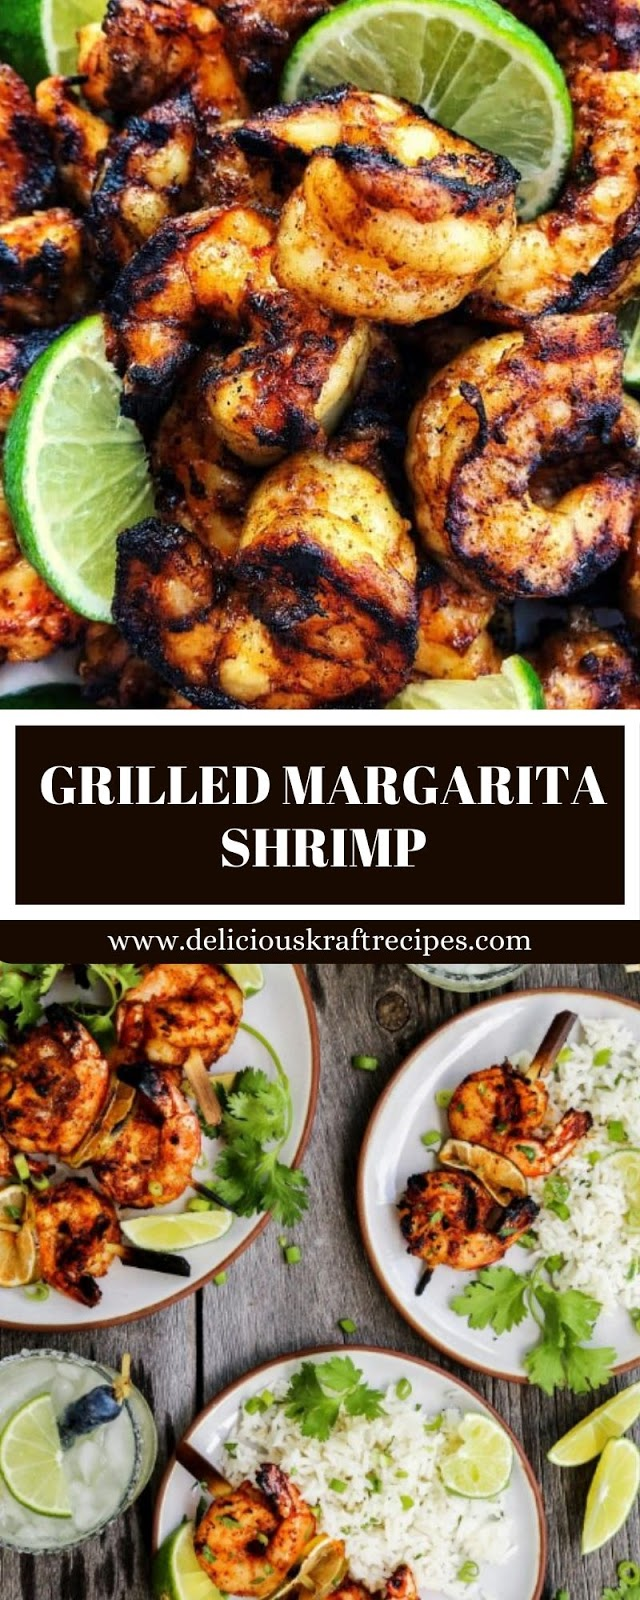 GRILLED MARGARITA SHRIMP